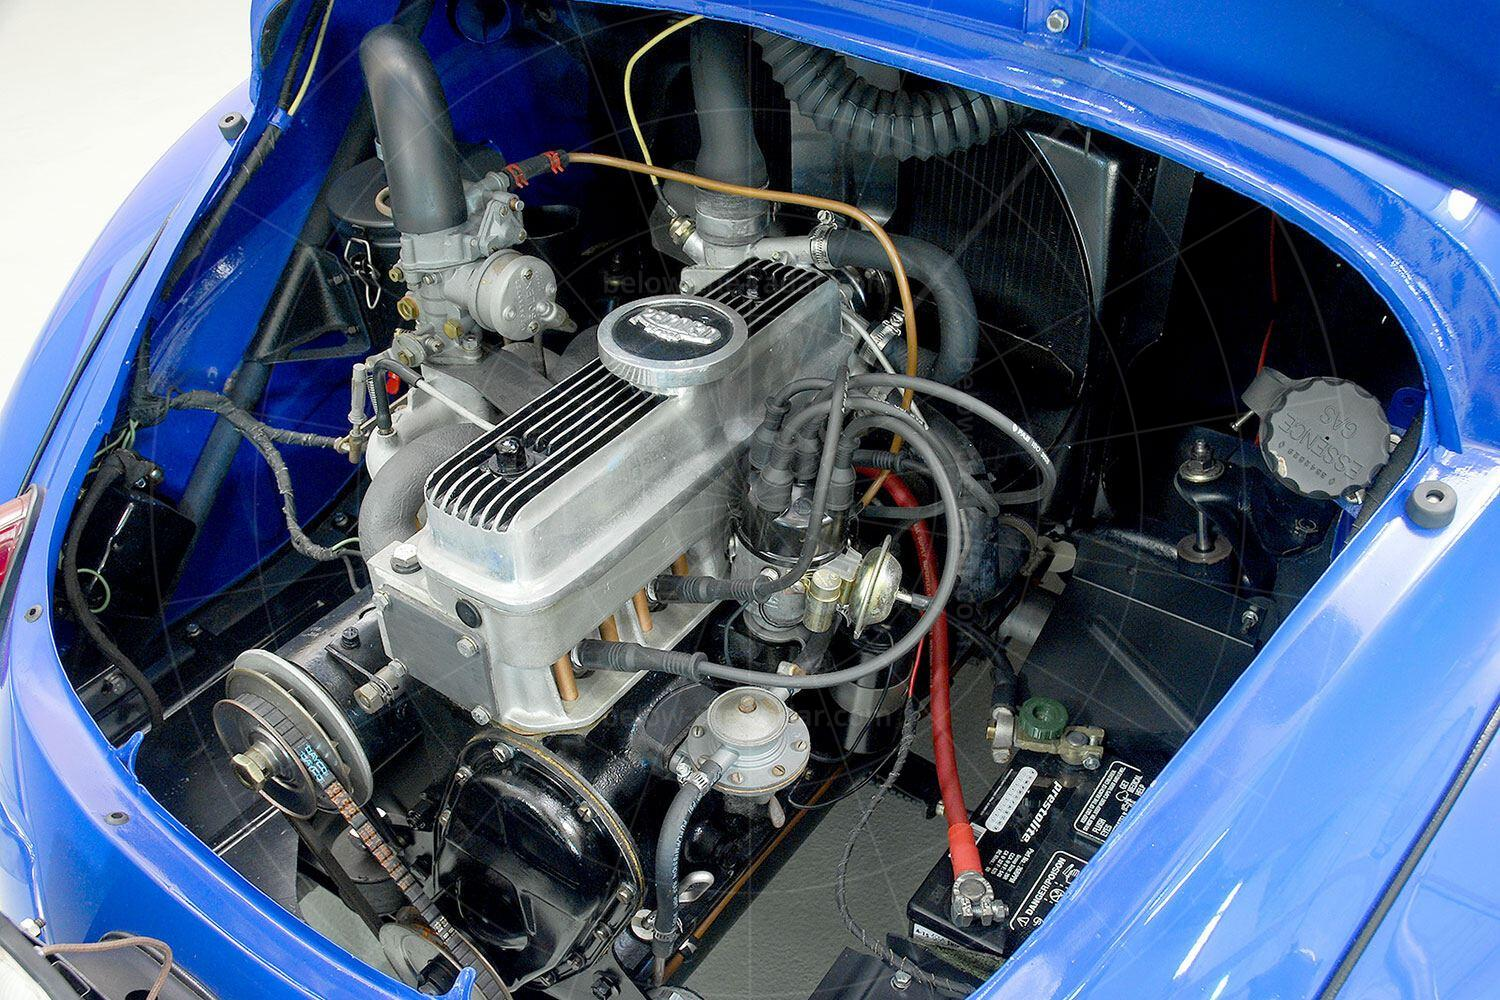 Renault 4CV Jolly engine bay Pic: Hyman Ltd | Renault 4CV Jolly engine bay